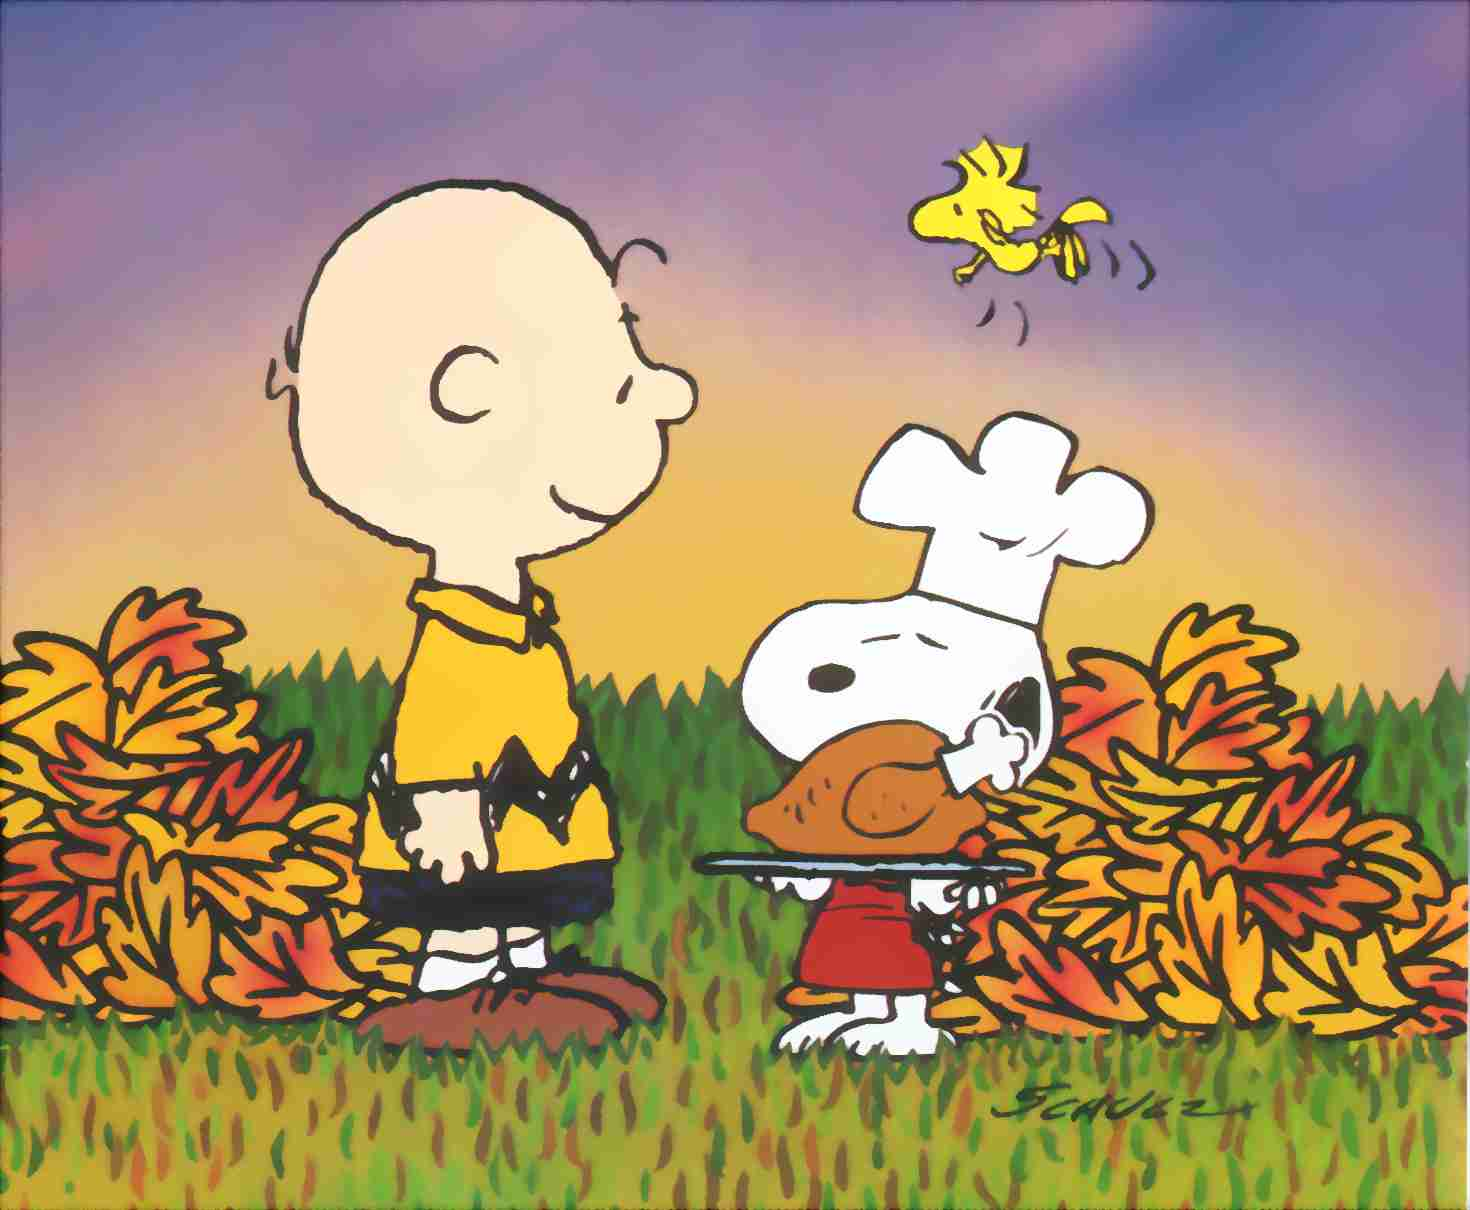 snoopy thanksgiving including easter beagle coloring pages 1 on easter beagle coloring pages also with easter beagle coloring pages 2 on easter beagle coloring pages moreover easter beagle coloring pages 3 on easter beagle coloring pages moreover easter beagle coloring pages 4 on easter beagle coloring pages